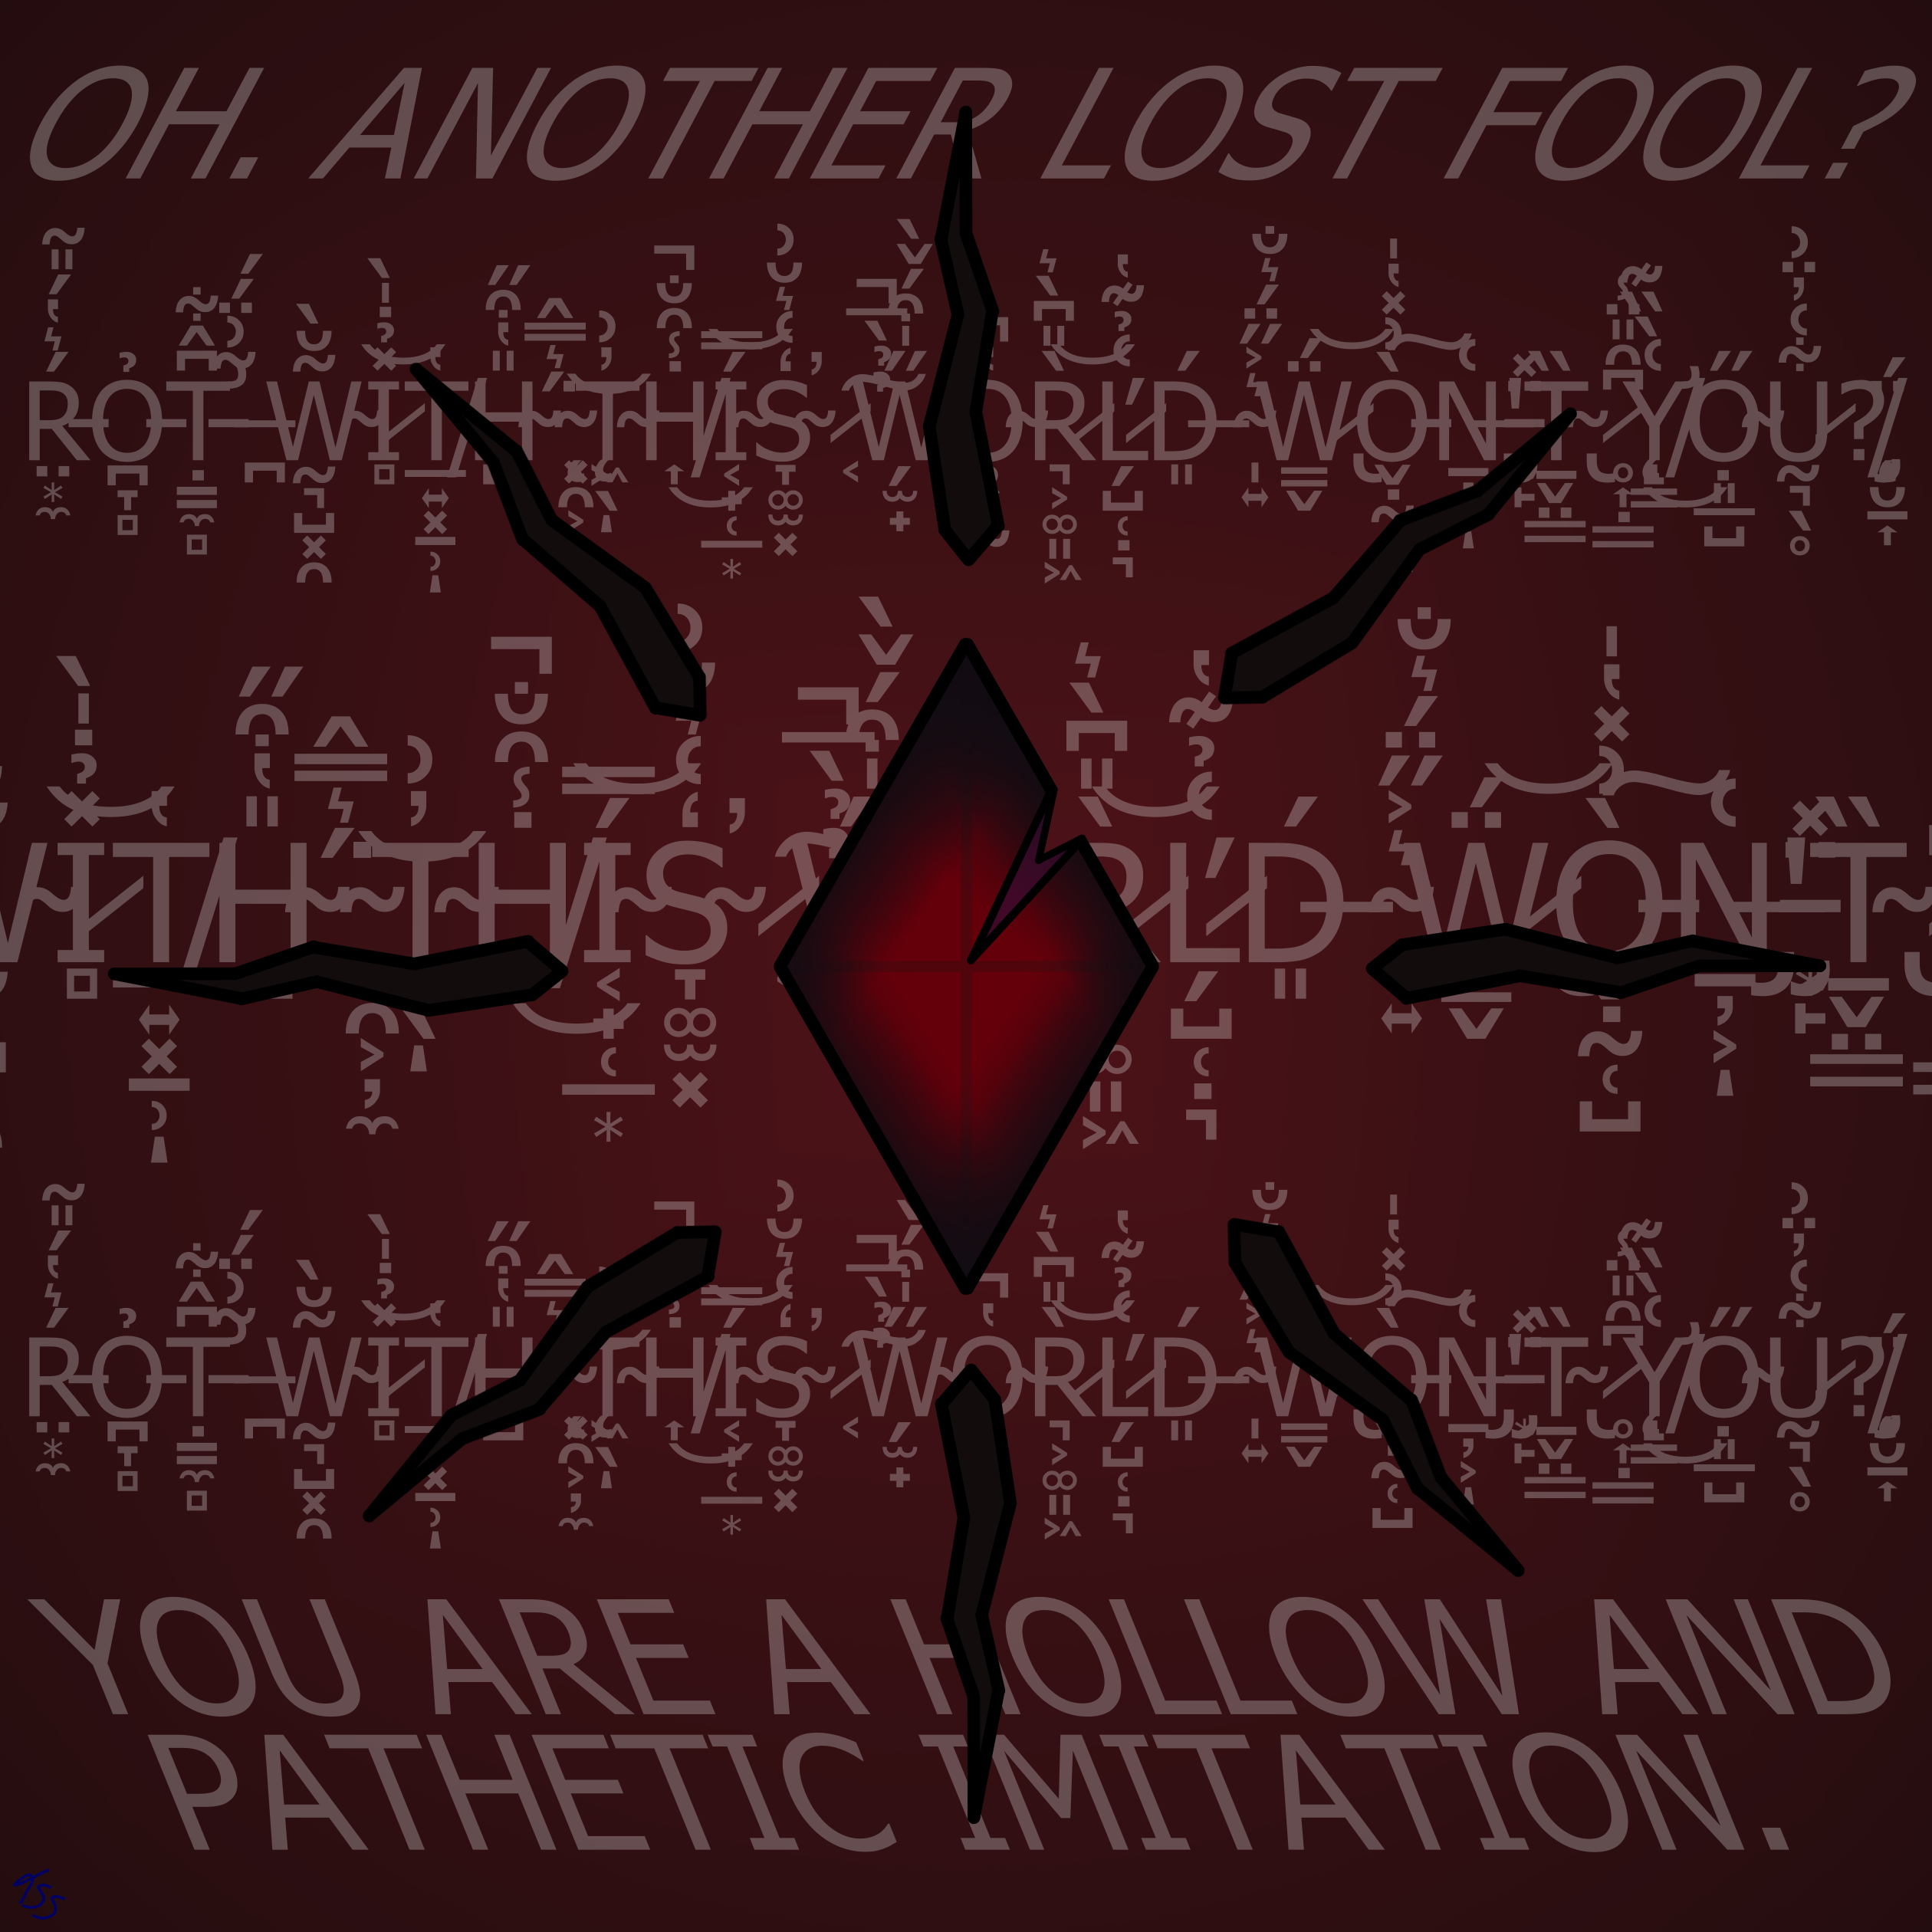 ROT WITH THIS WORLD WON'T YOU?